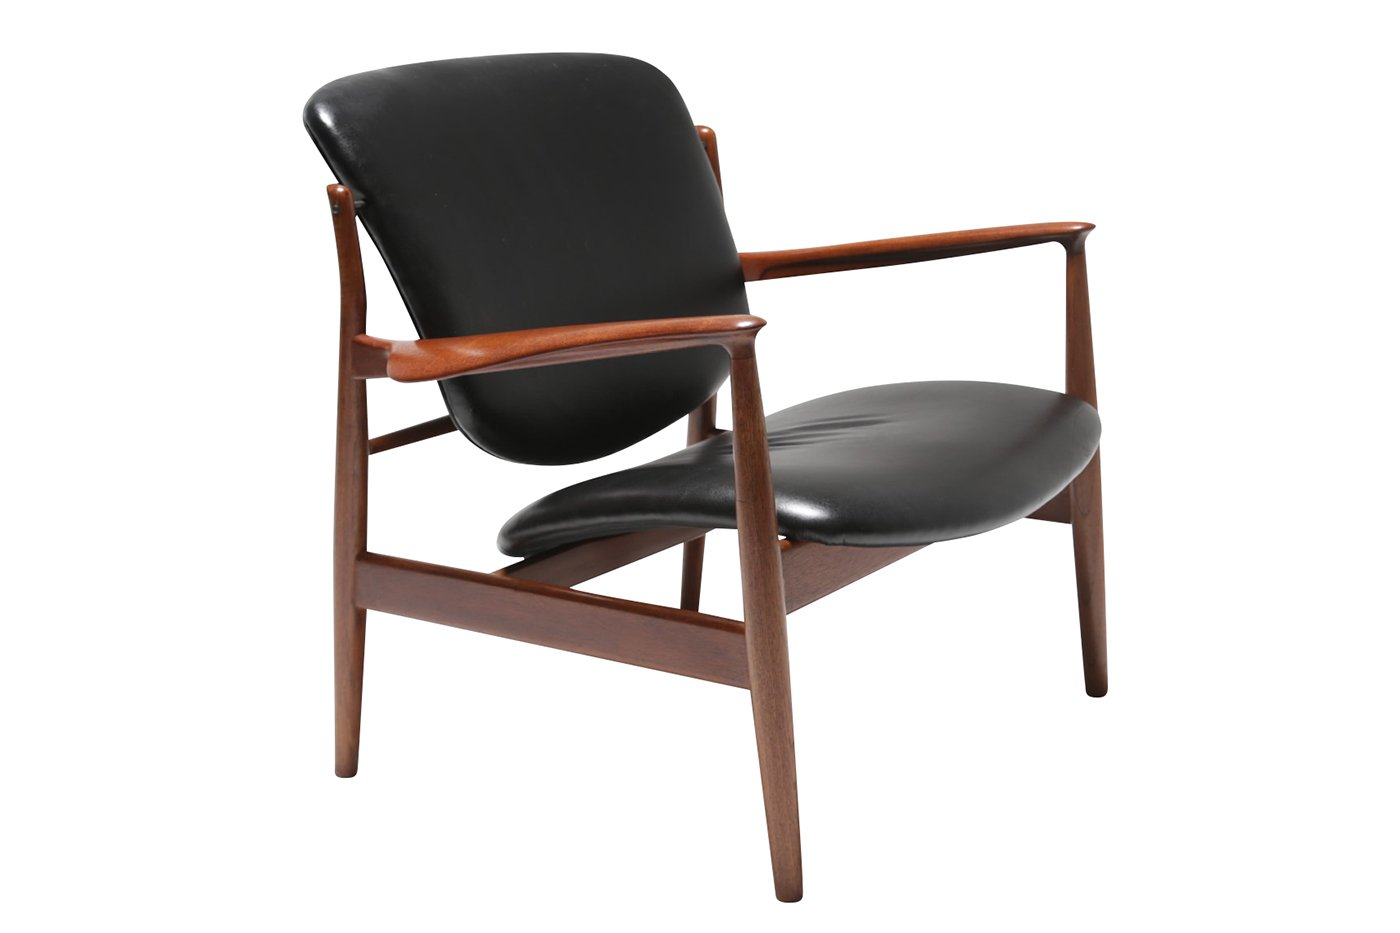 fd 136 teak leather armchair by finn juhl for france daverkosen 1950s for sale at pamono. Black Bedroom Furniture Sets. Home Design Ideas